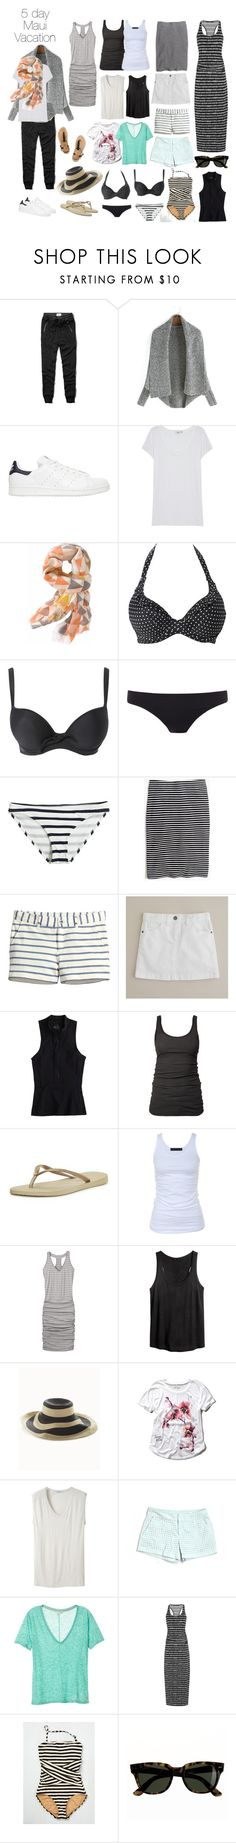 """""""Quick Maui Beach Vacation packing list"""" by wrymommy ❤ liked on Polyvore featuring Abercrombie & Fitch, adidas Originals, Vince, Pistil, Freya, Paul Smith, Calypso Private Label, Madewell, H&M and J.Crew"""